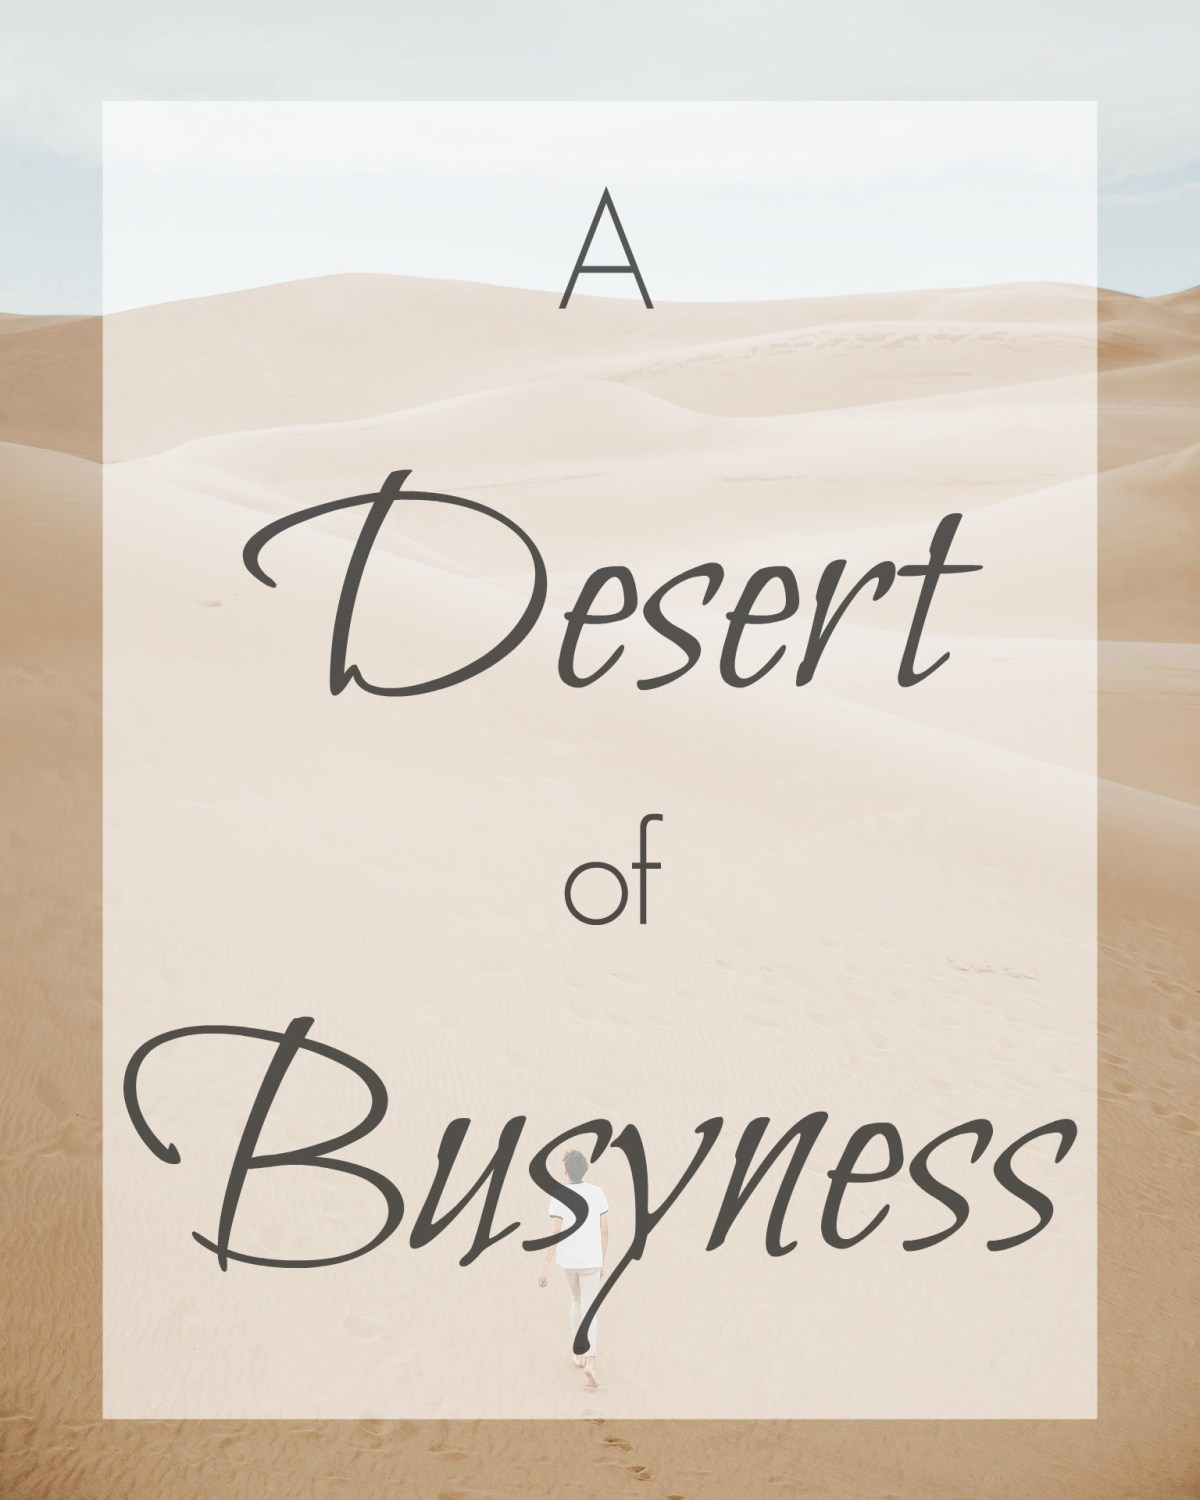 Hectic, busy times can be a kind of desert in our lives.